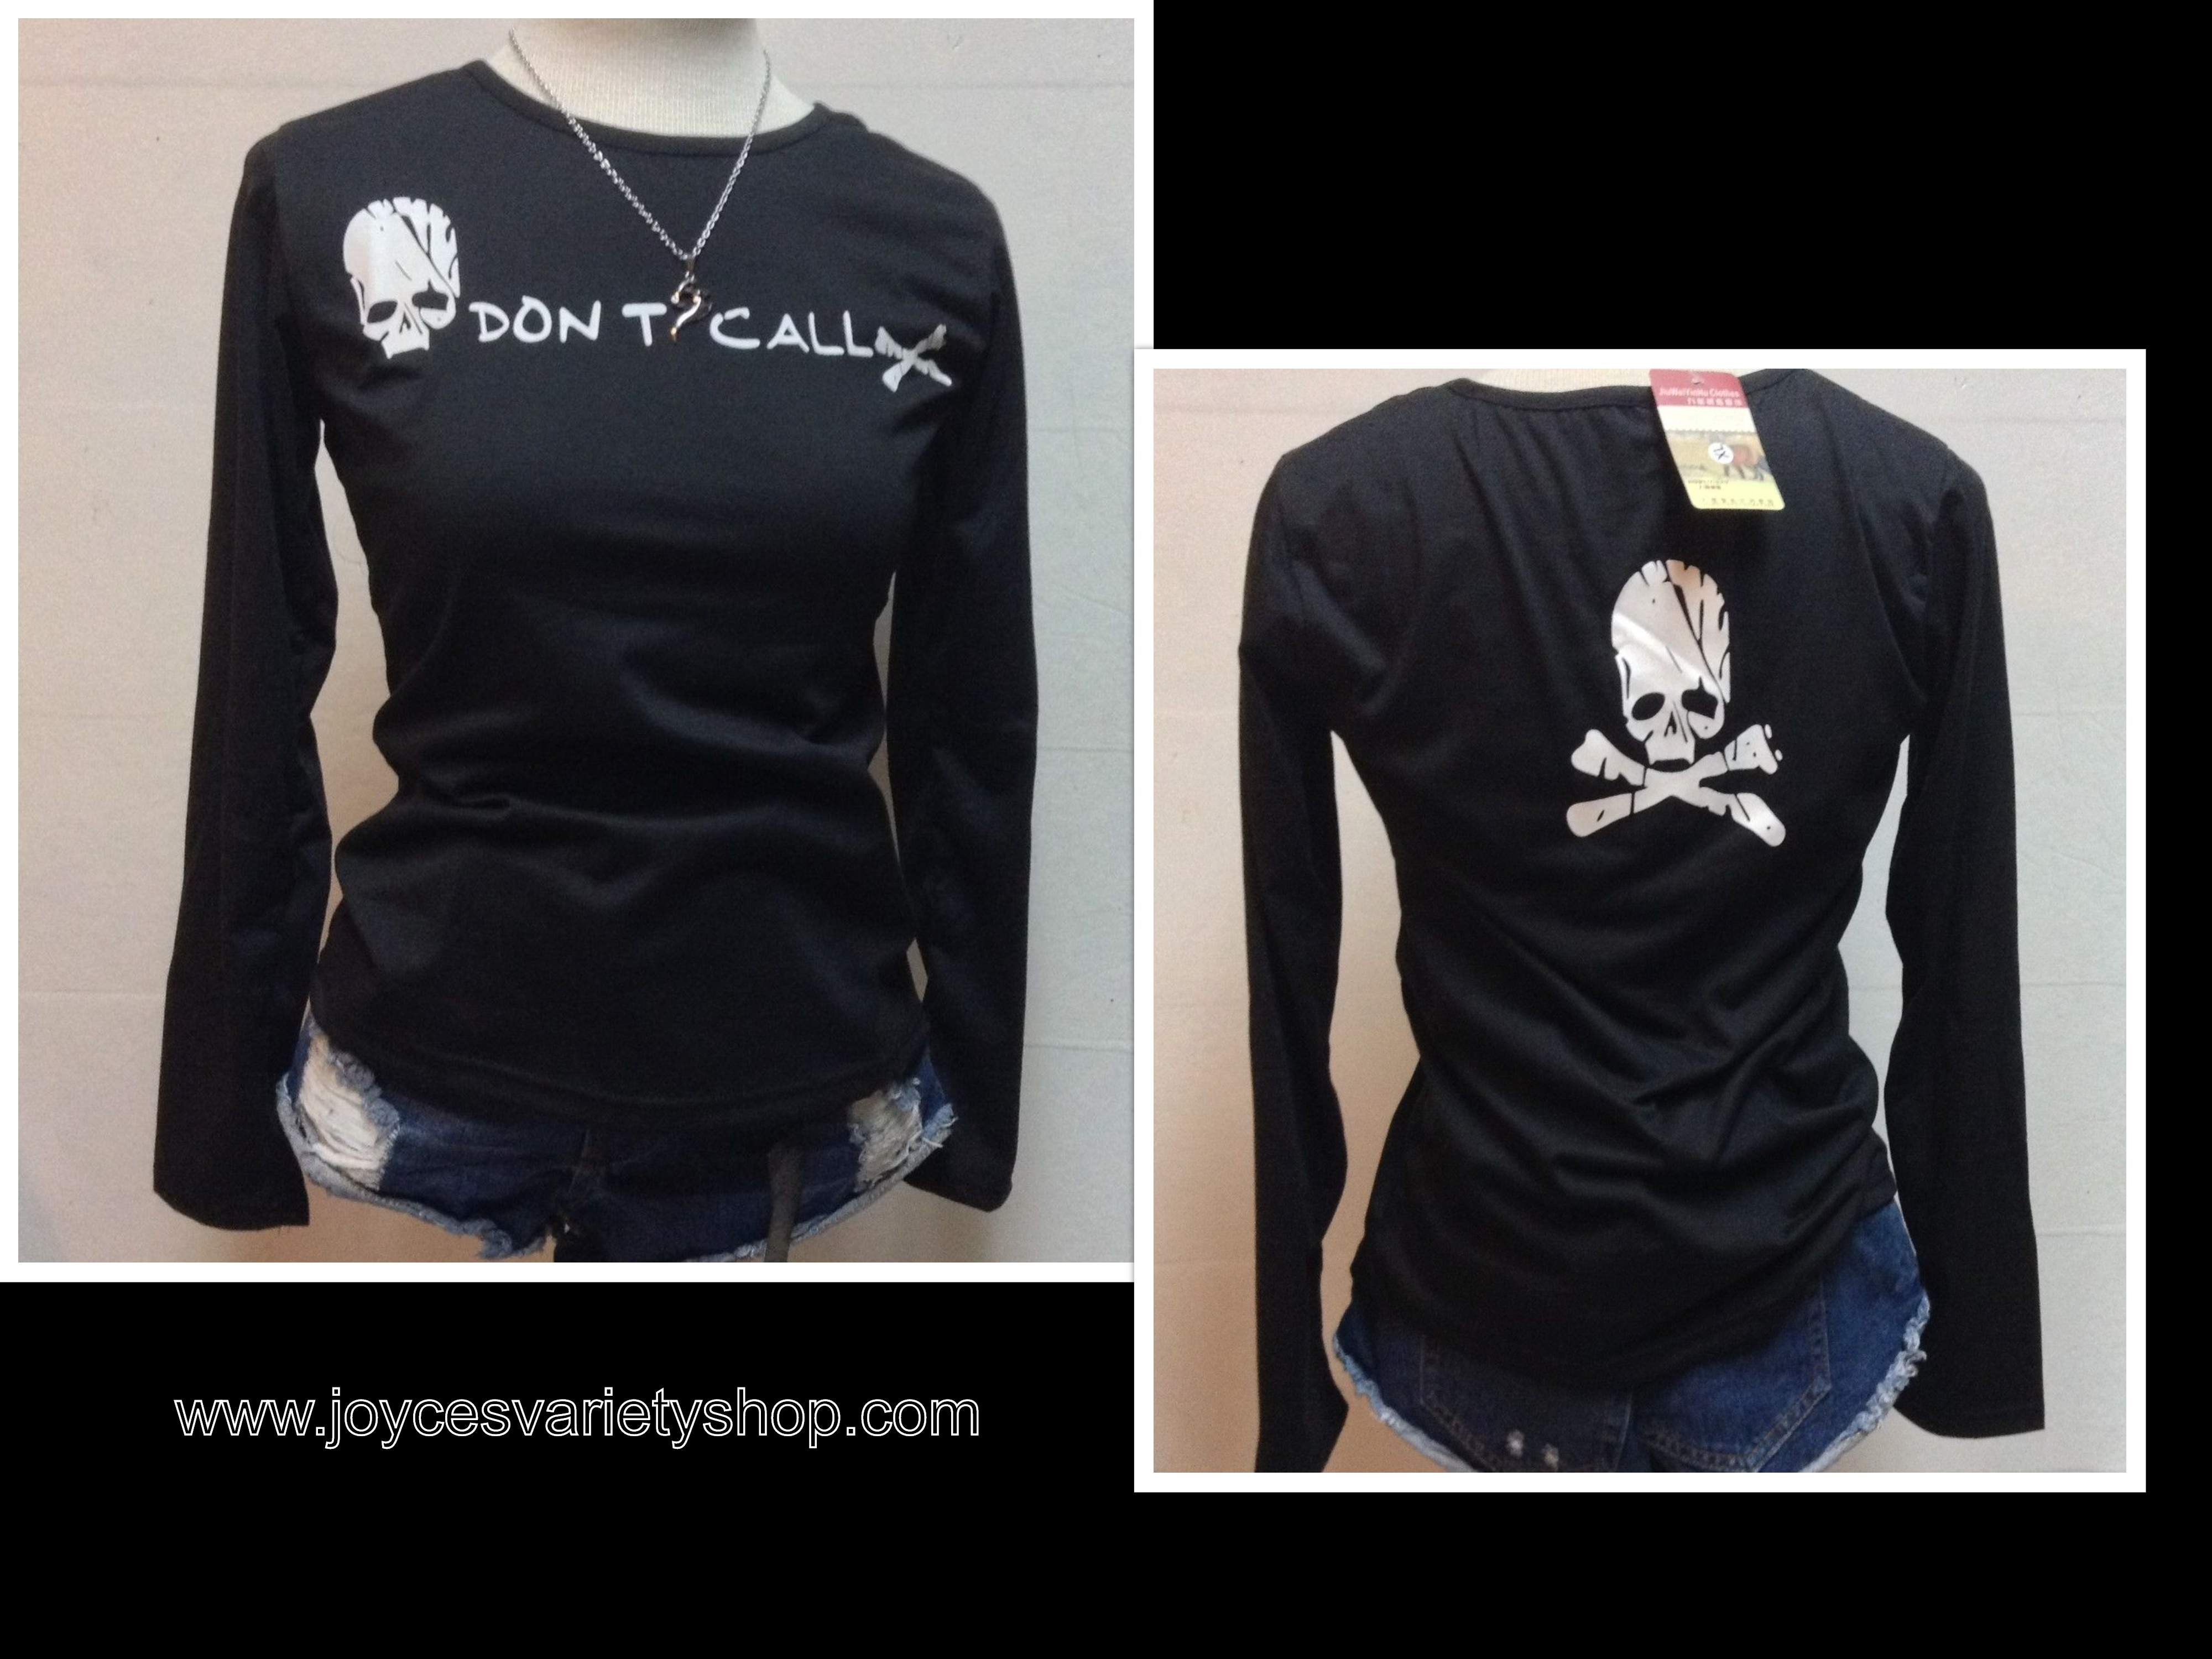 DON'T CALL Skull Shirt Blouse T-Shirt Top Graphic Sz L or M